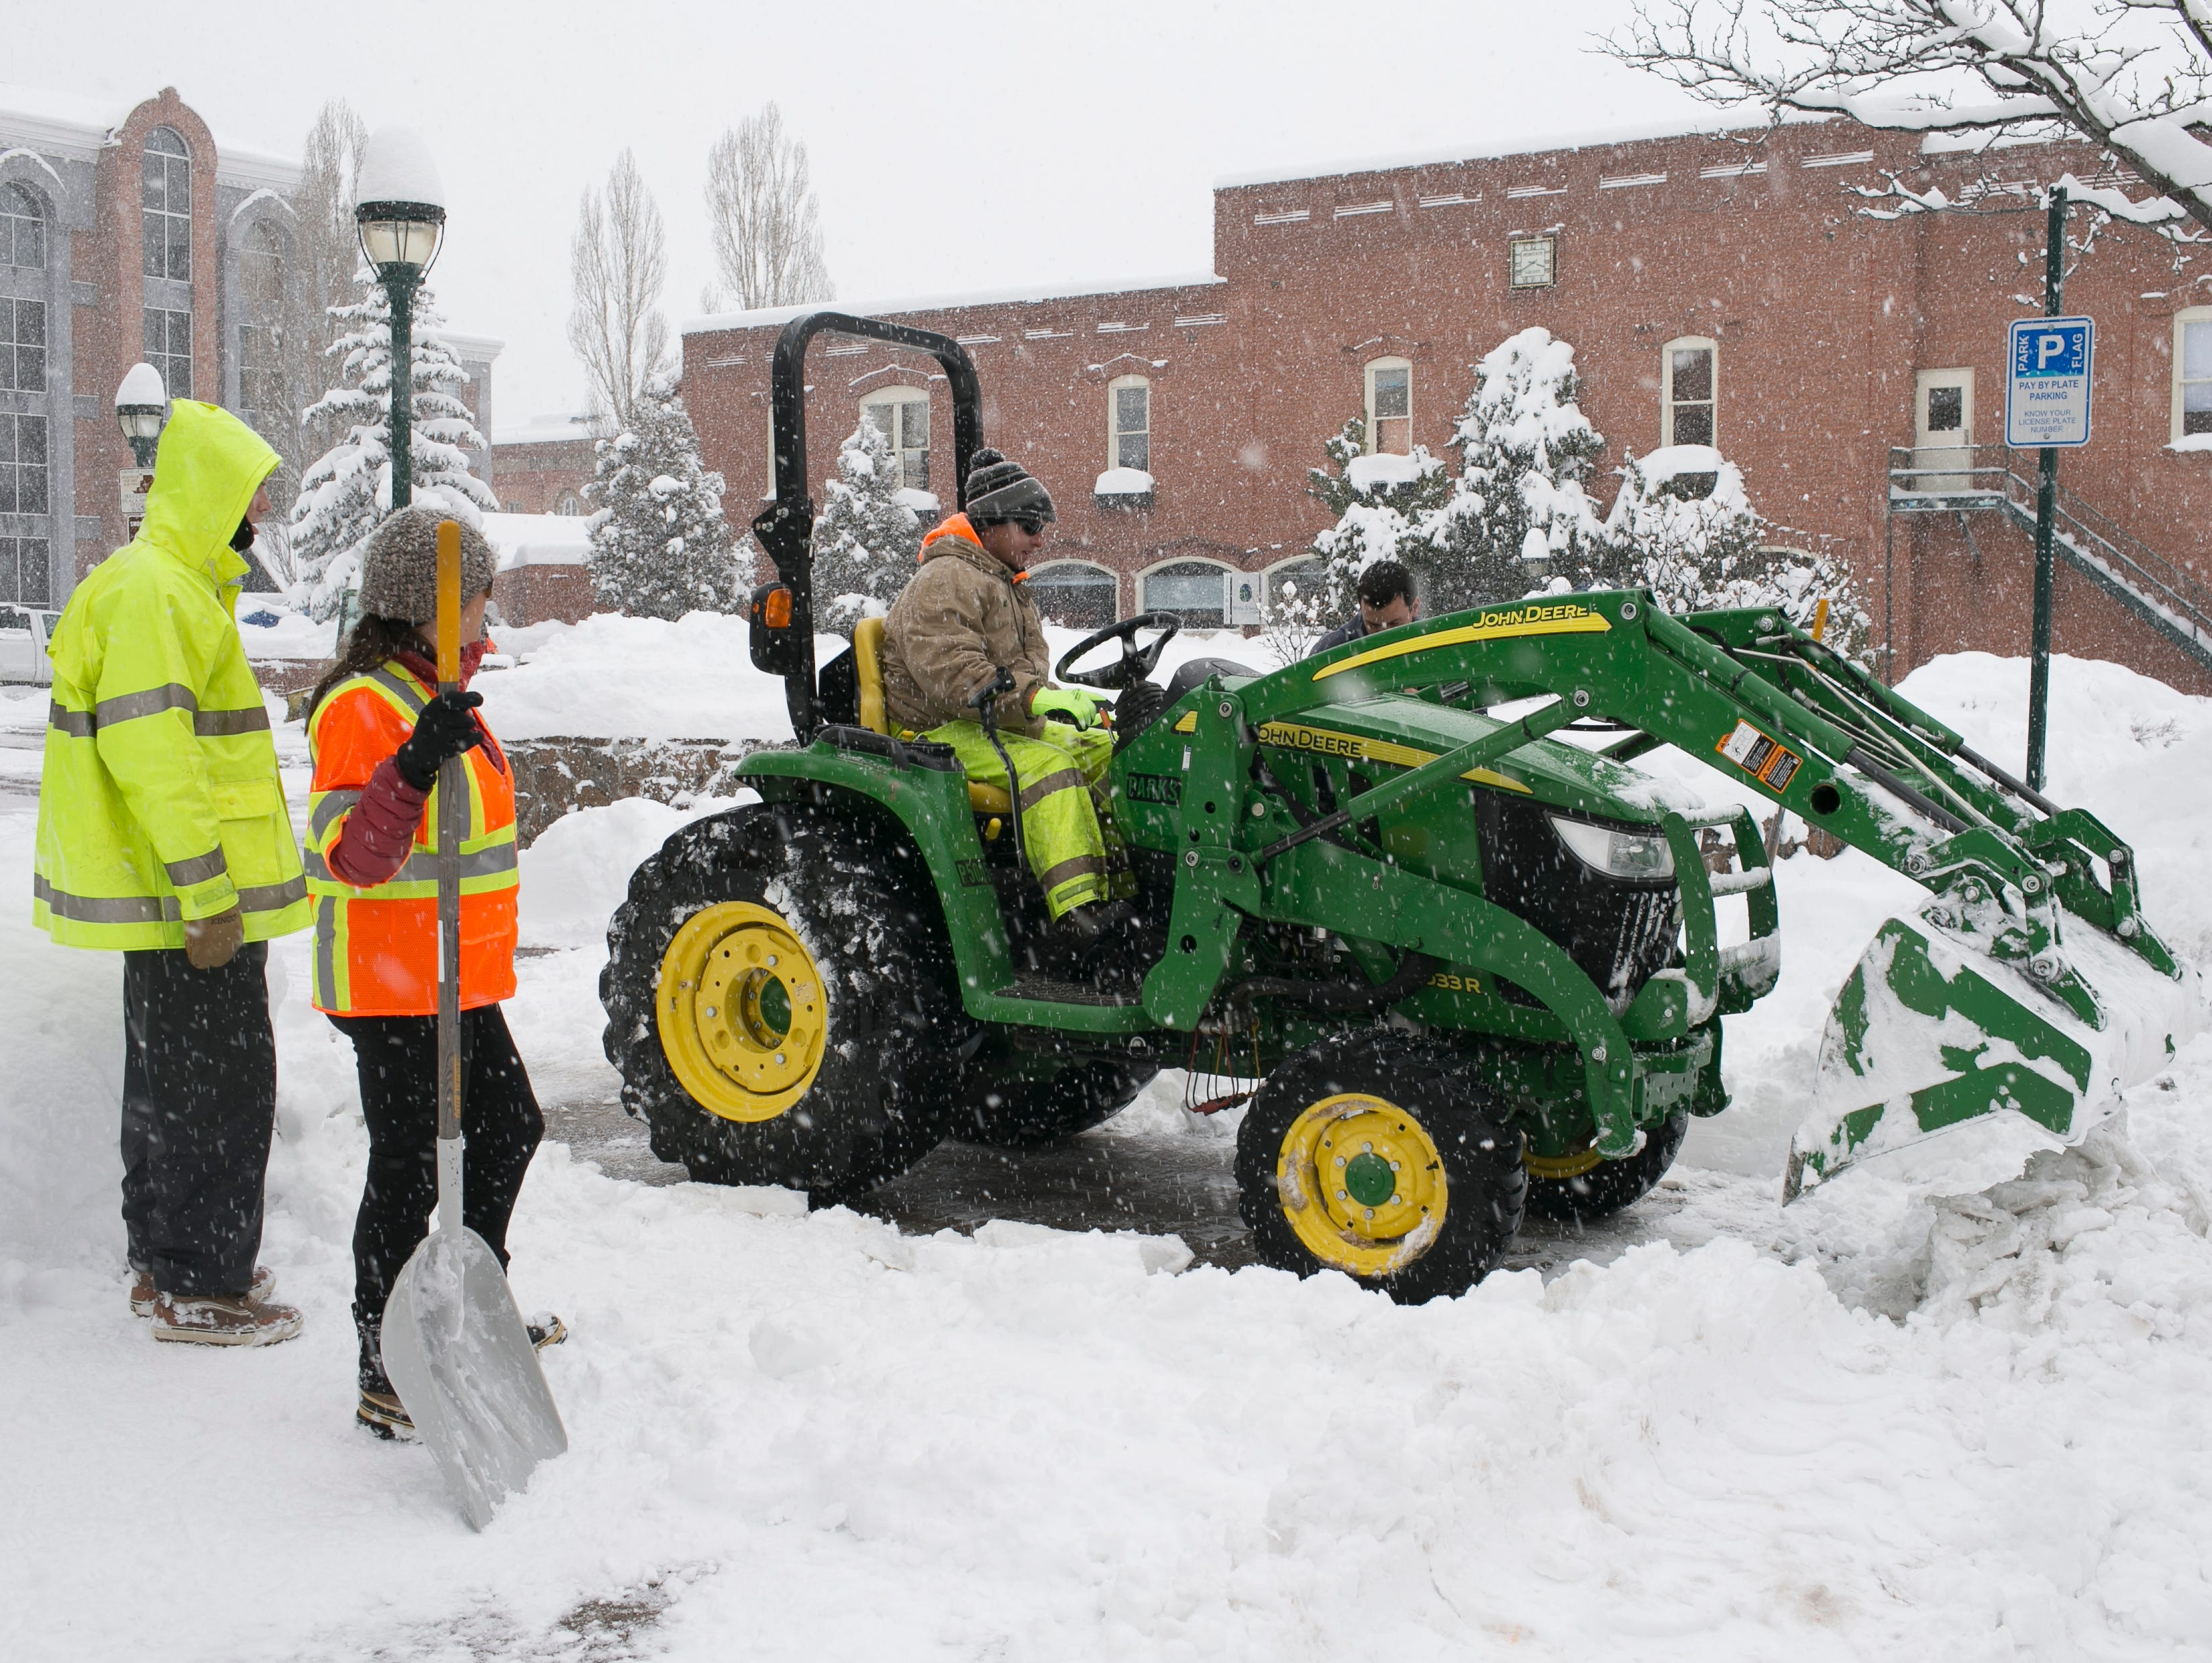 Cleaning up begins the morning after a snow storm in Flagstaff on Feb. 22, 2019.